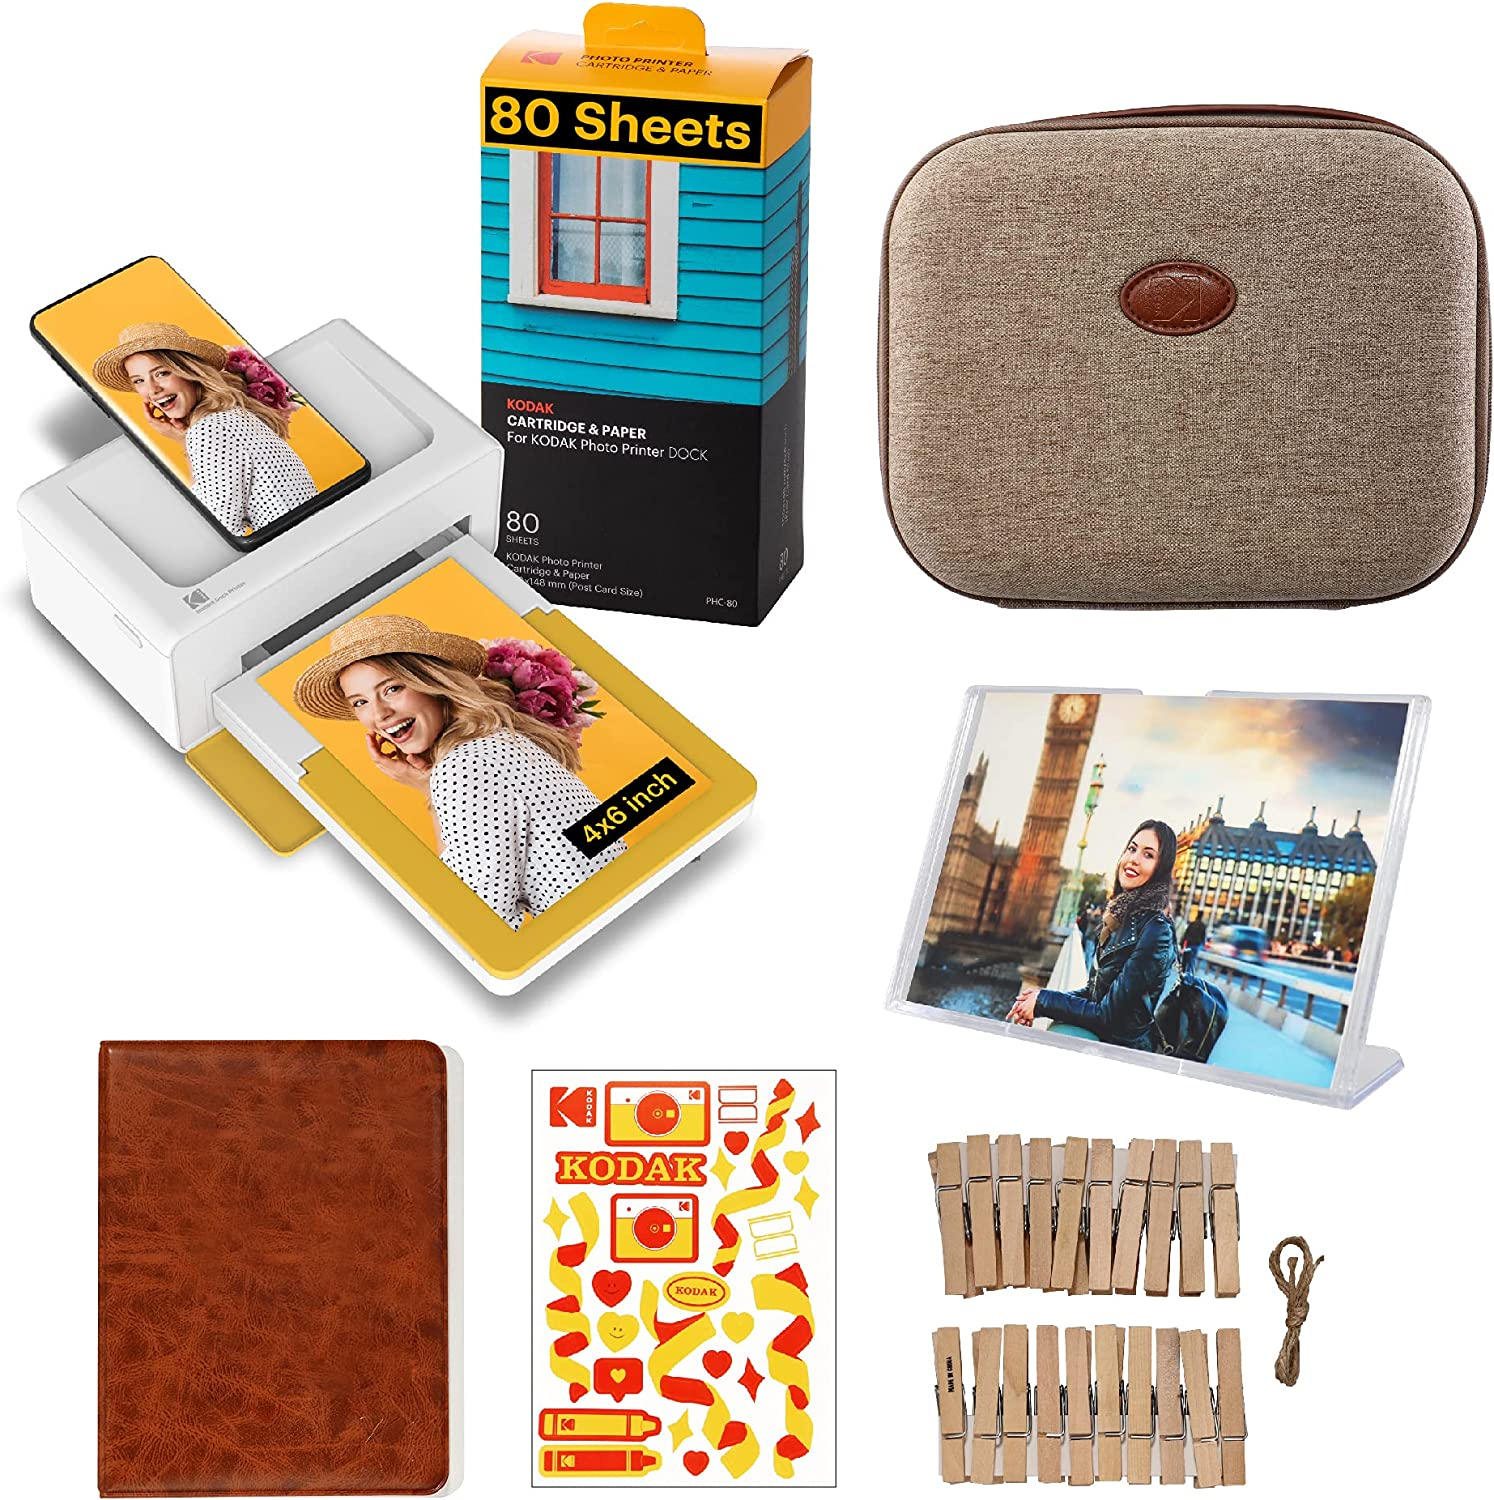 Kodak Dock Plus 4x6 Instant Photo Printer Accessory Gift Bundle – Bluetooth Portable Photo Printer Full Color Printing – Mobile App Compatible with iOS and Android – Convenient and Practical